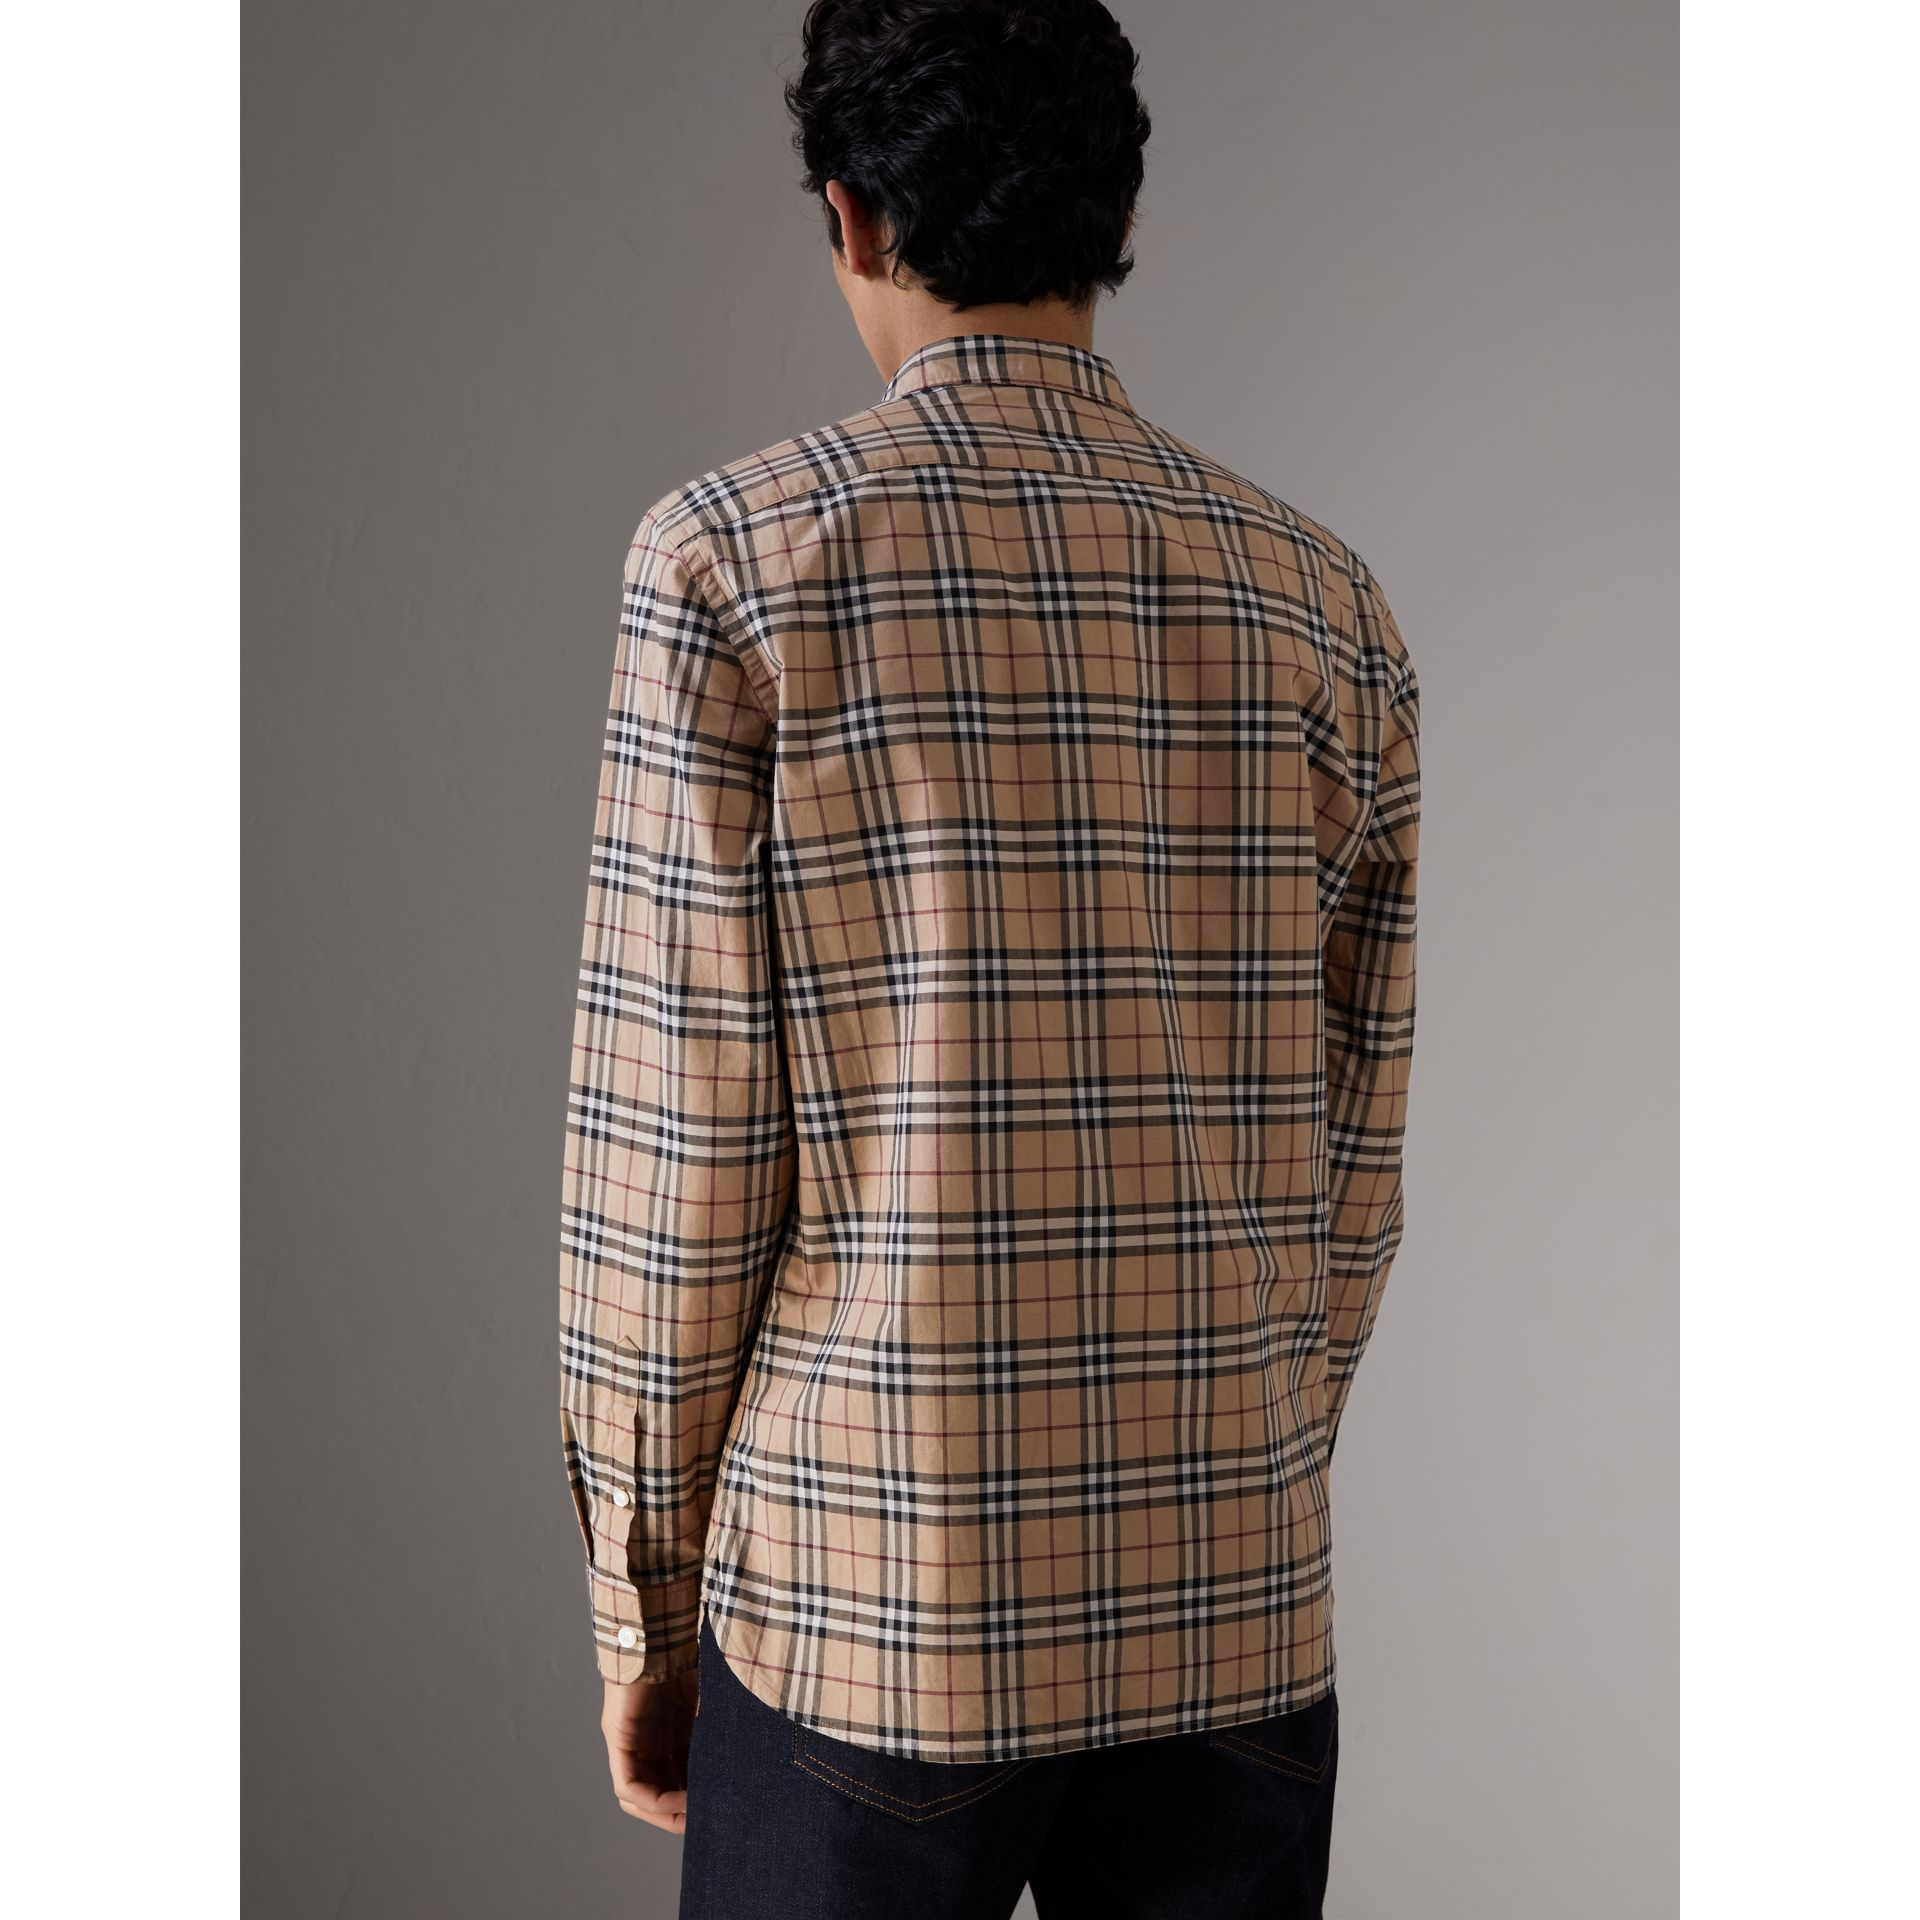 Check Cotton Shirt in Camel - Men | Burberry United Kingdom - gallery image 2